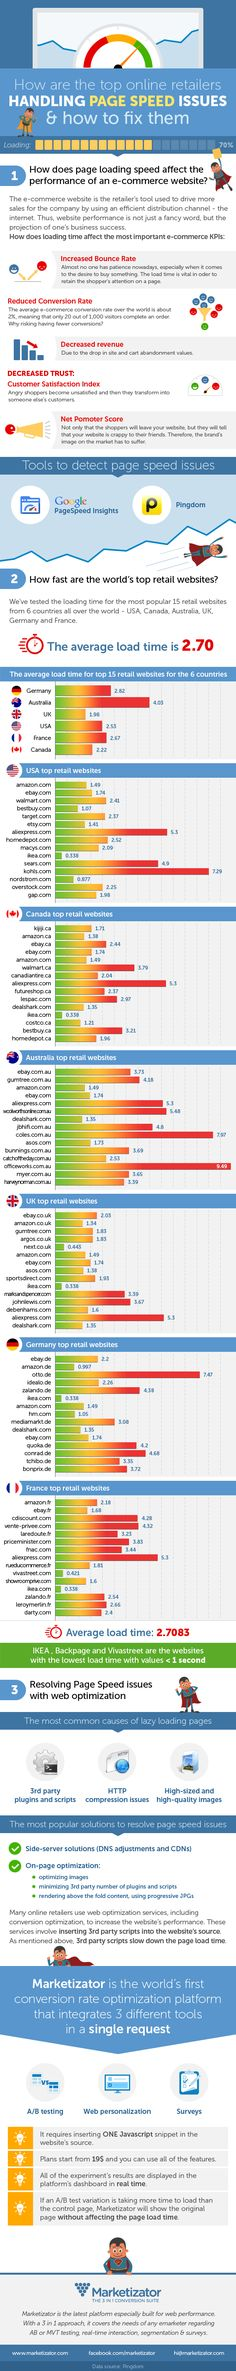 Page speed issues and how to handle them smart. Research on top 15 online retailers from 6 countries: USA, Canada, UK, Australia, Germany and France